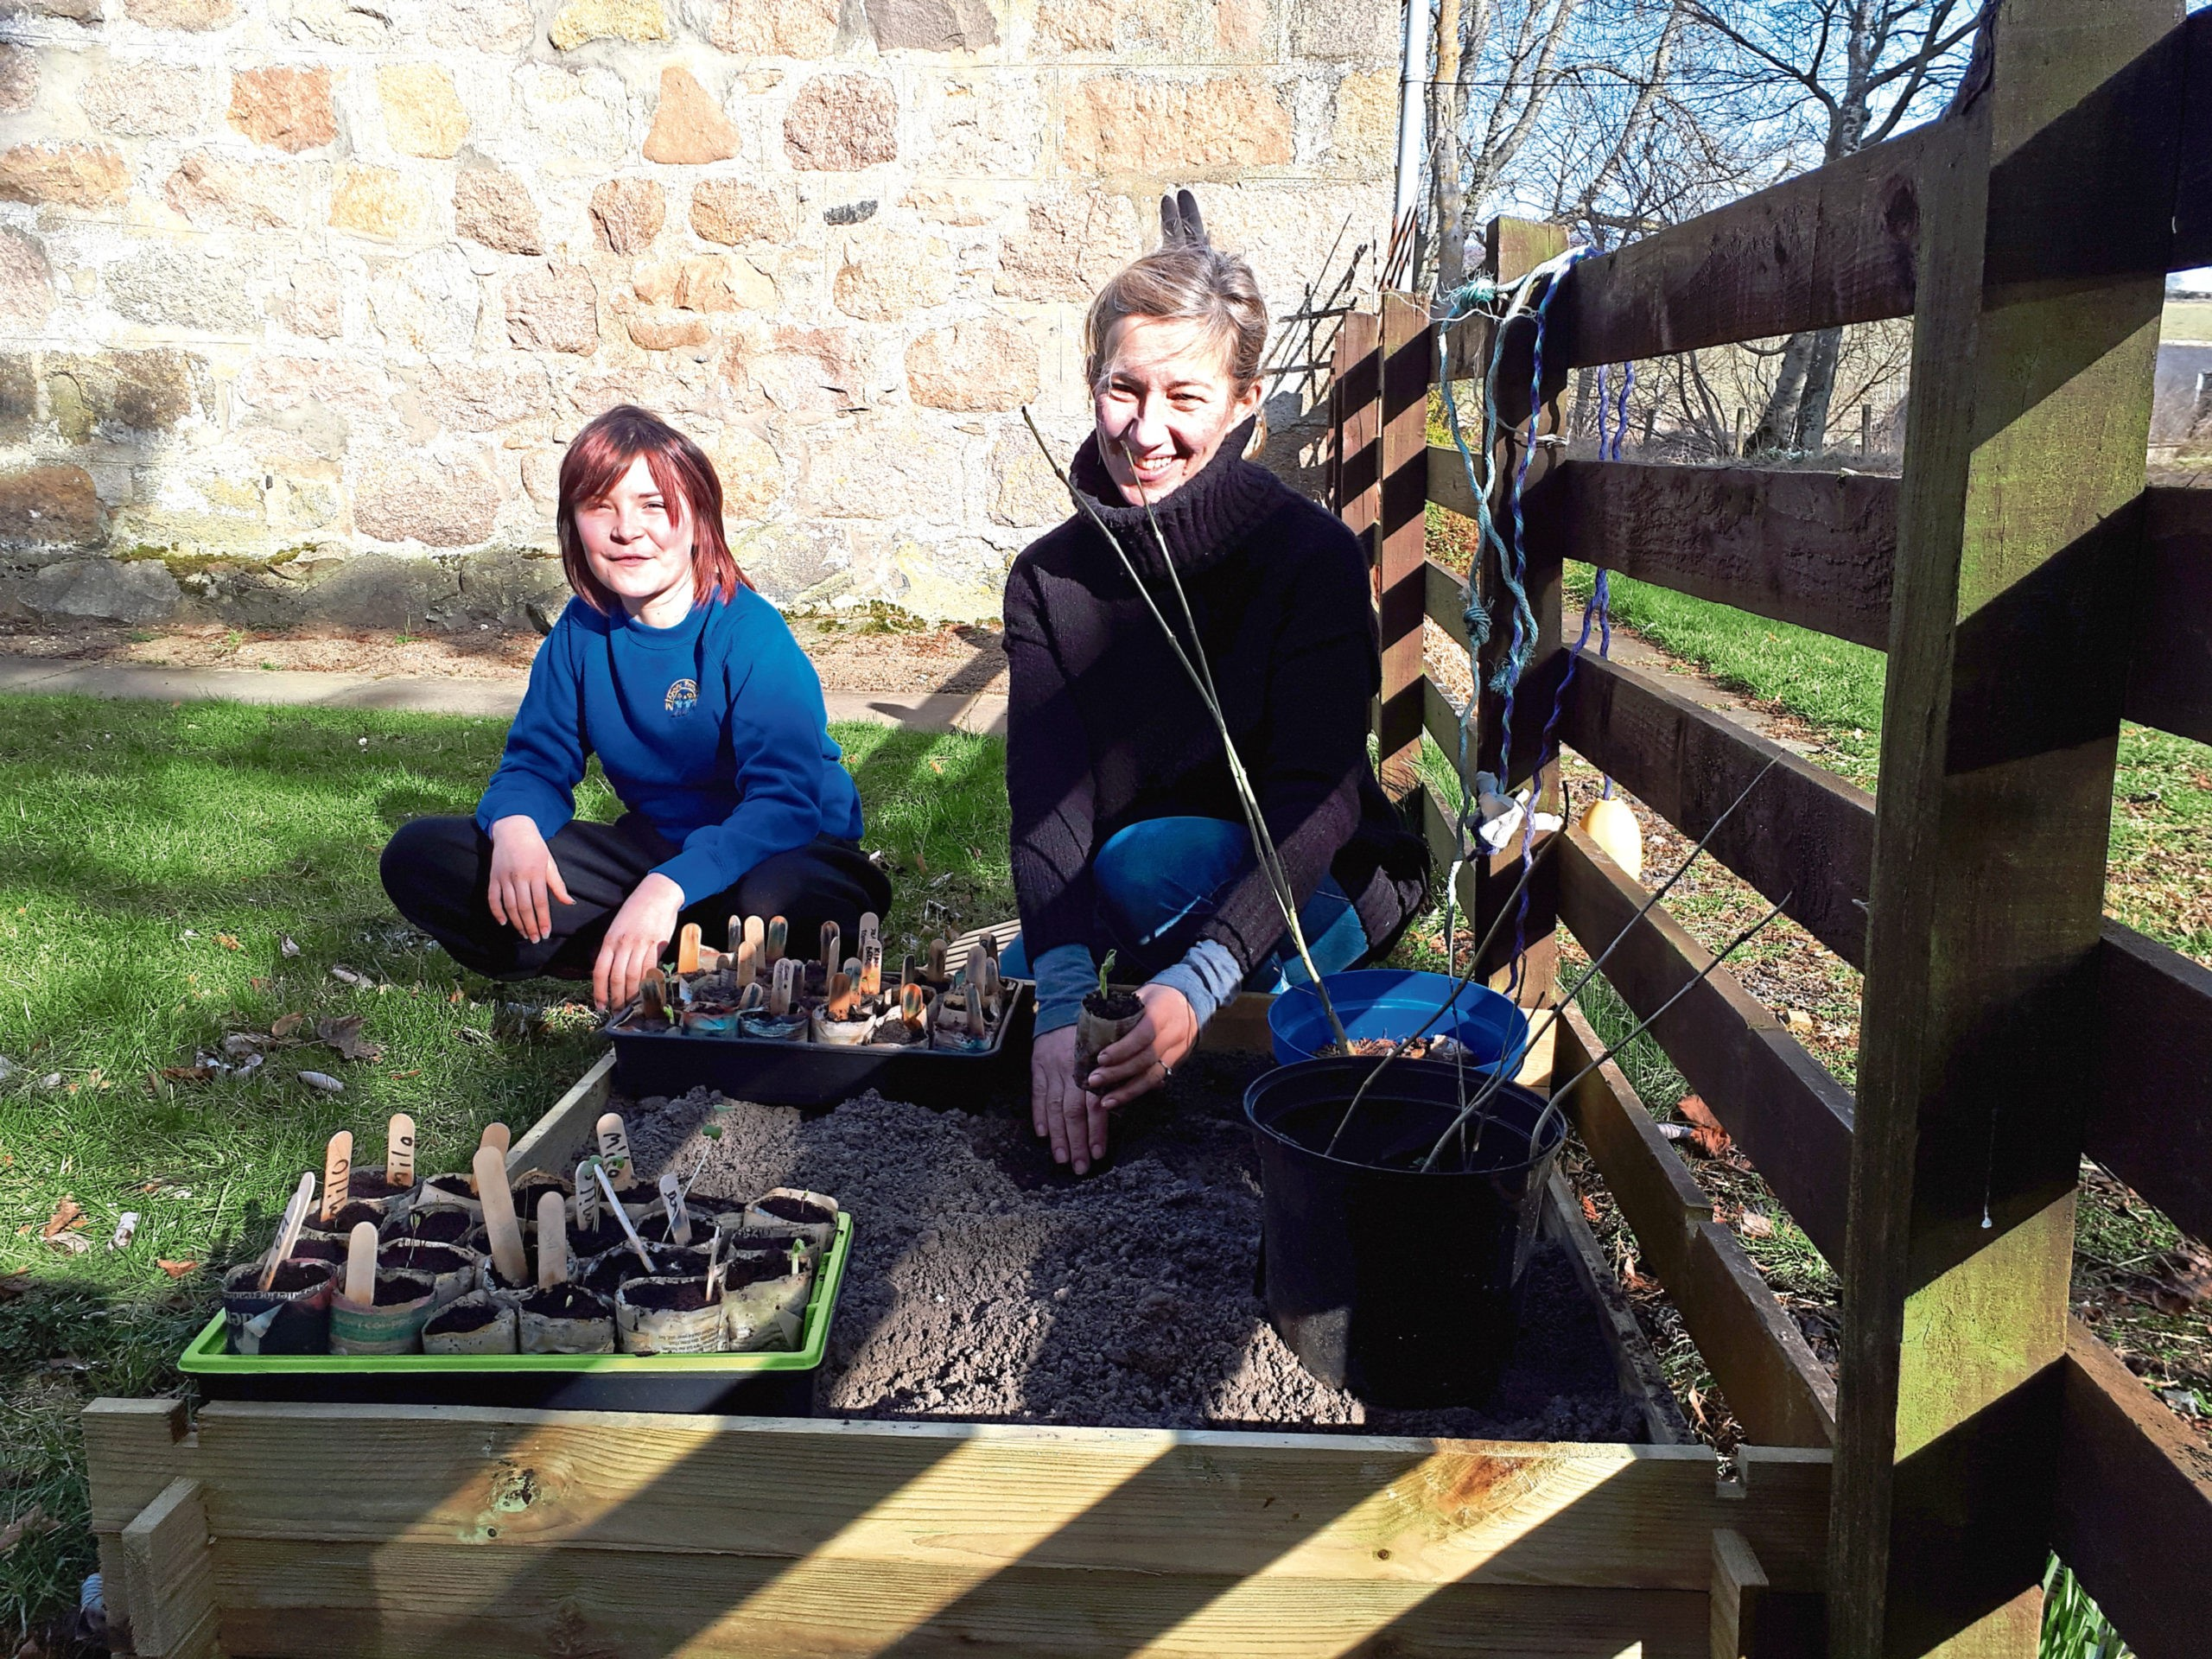 Aboyne Primary Teacher, Marianne Brooks and her daughter Rebecca planting out the seeds from our school. Luca Steven's shoot is taking the lead at 2 inches tall